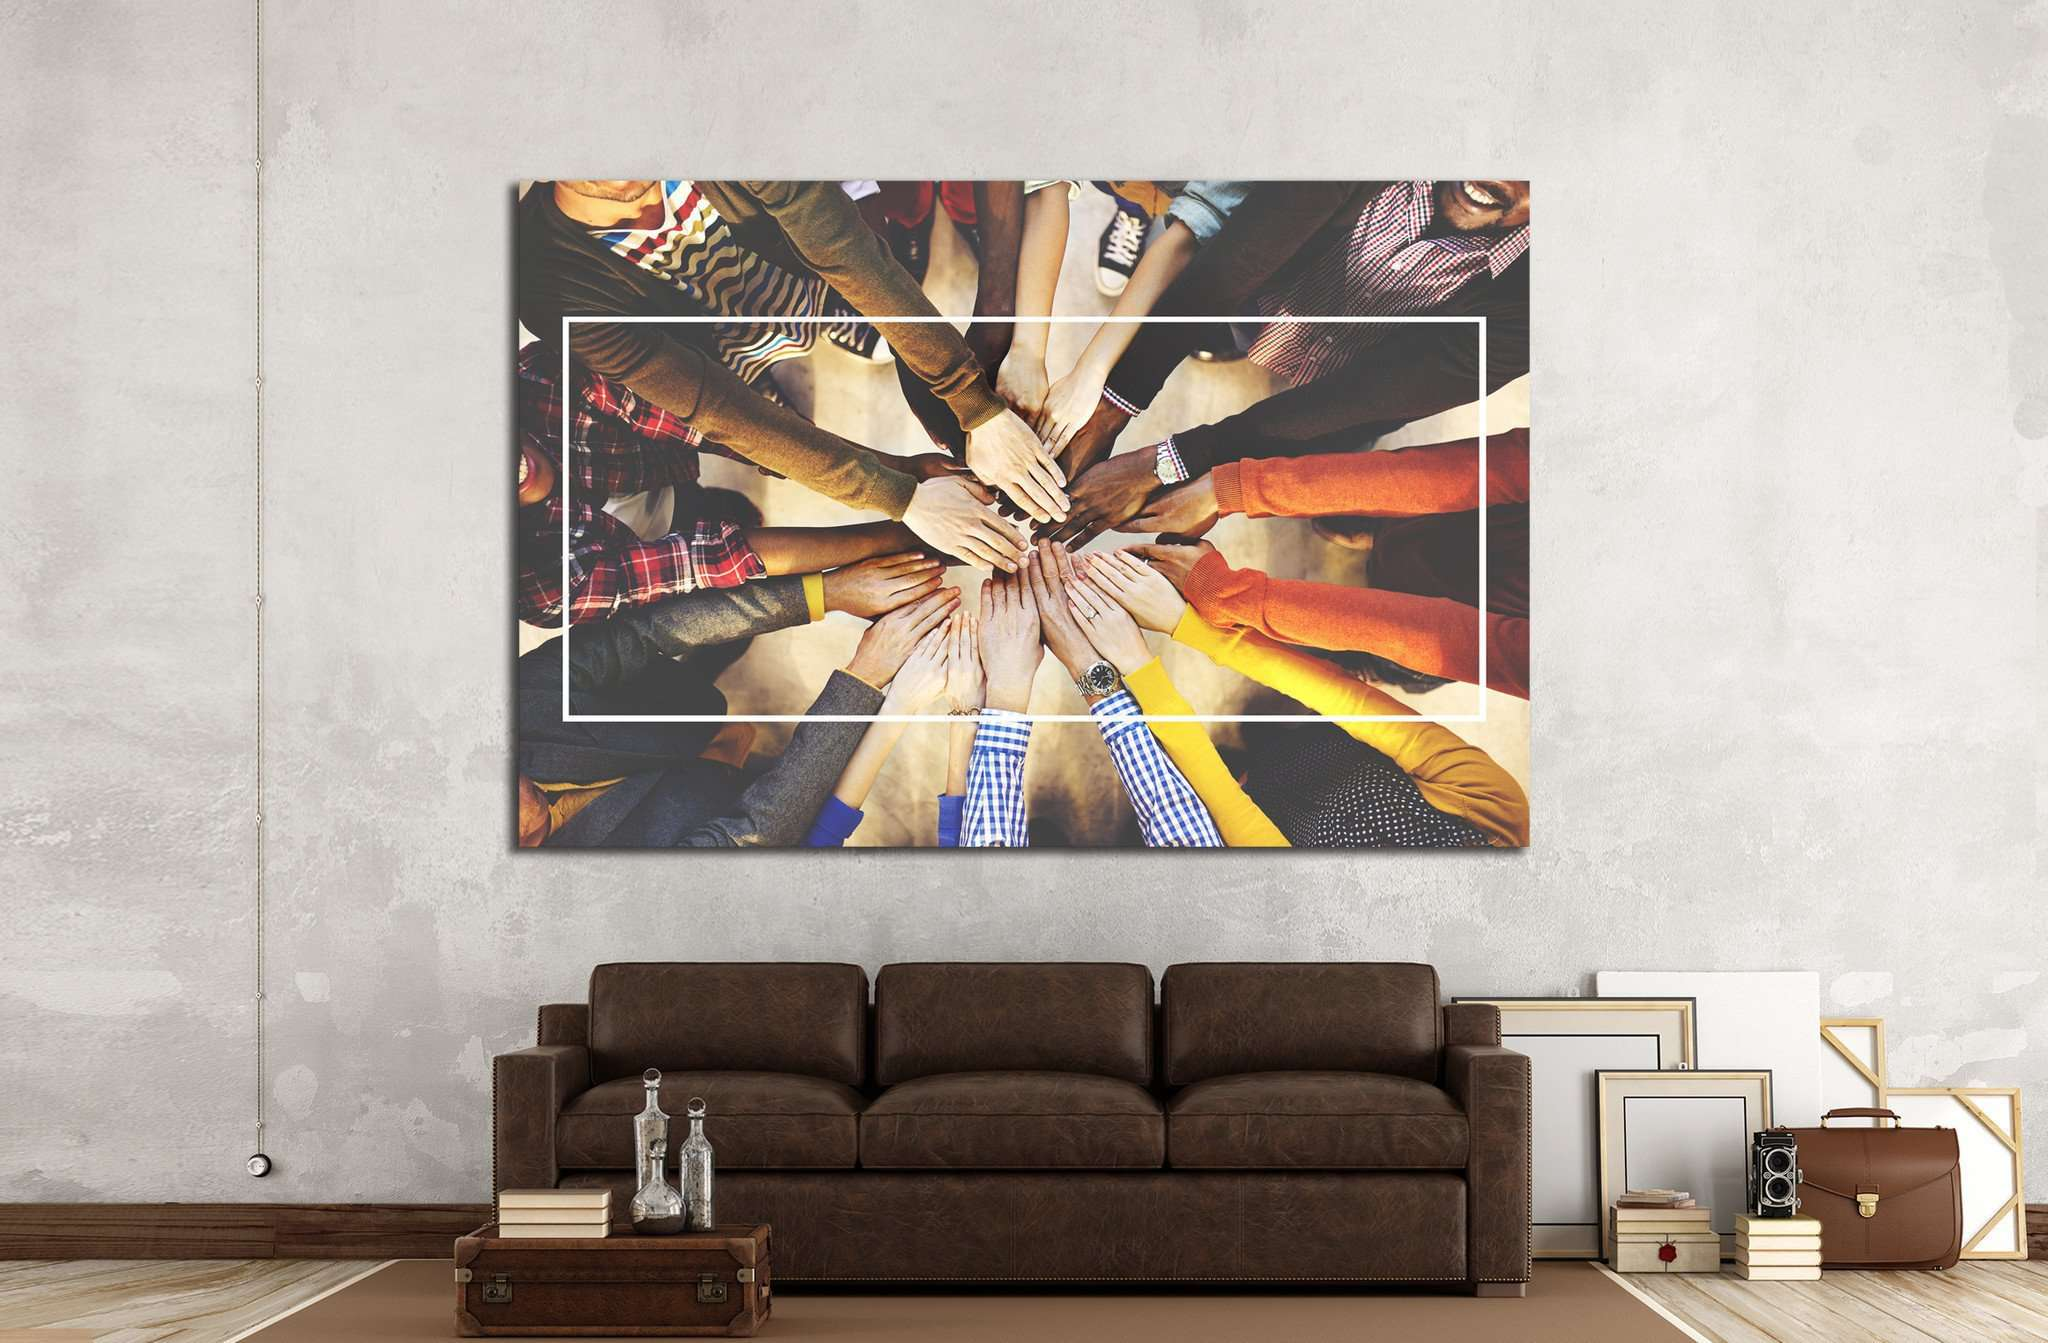 Abstract Concept №1449 - canvas print wall art by Zellart